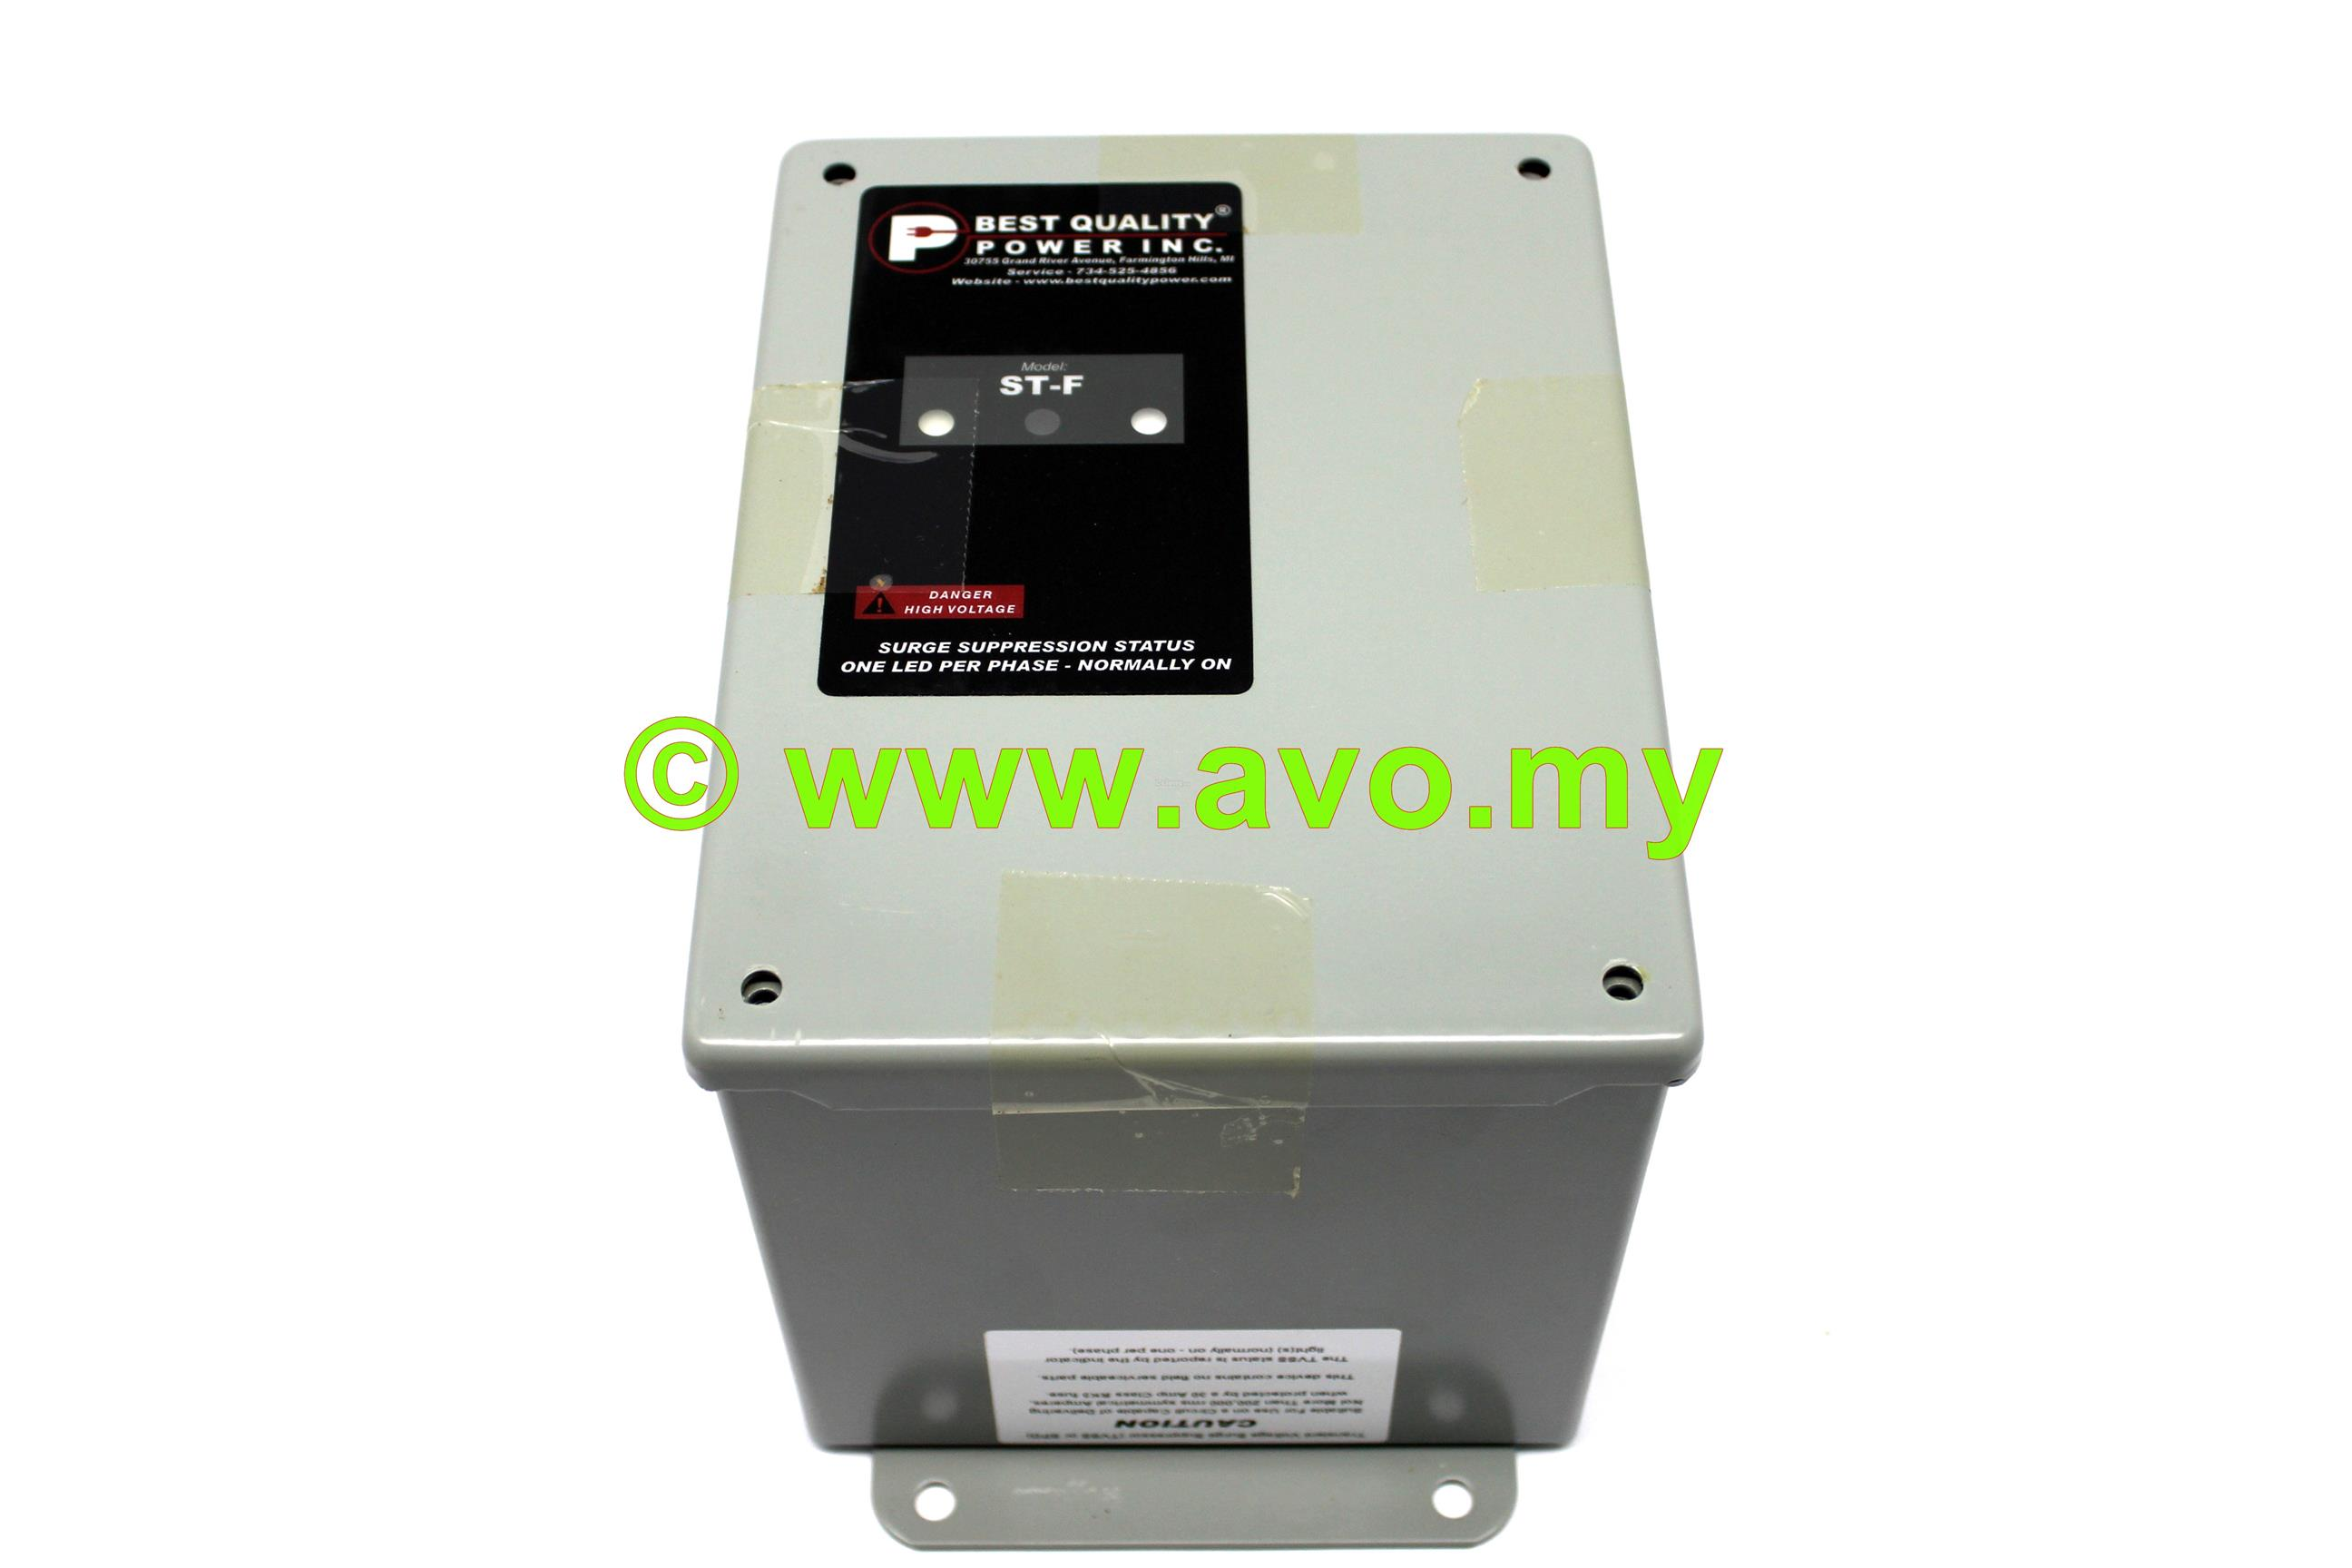 Best Quality Power ST Series, Model: ST-F-080-1P2